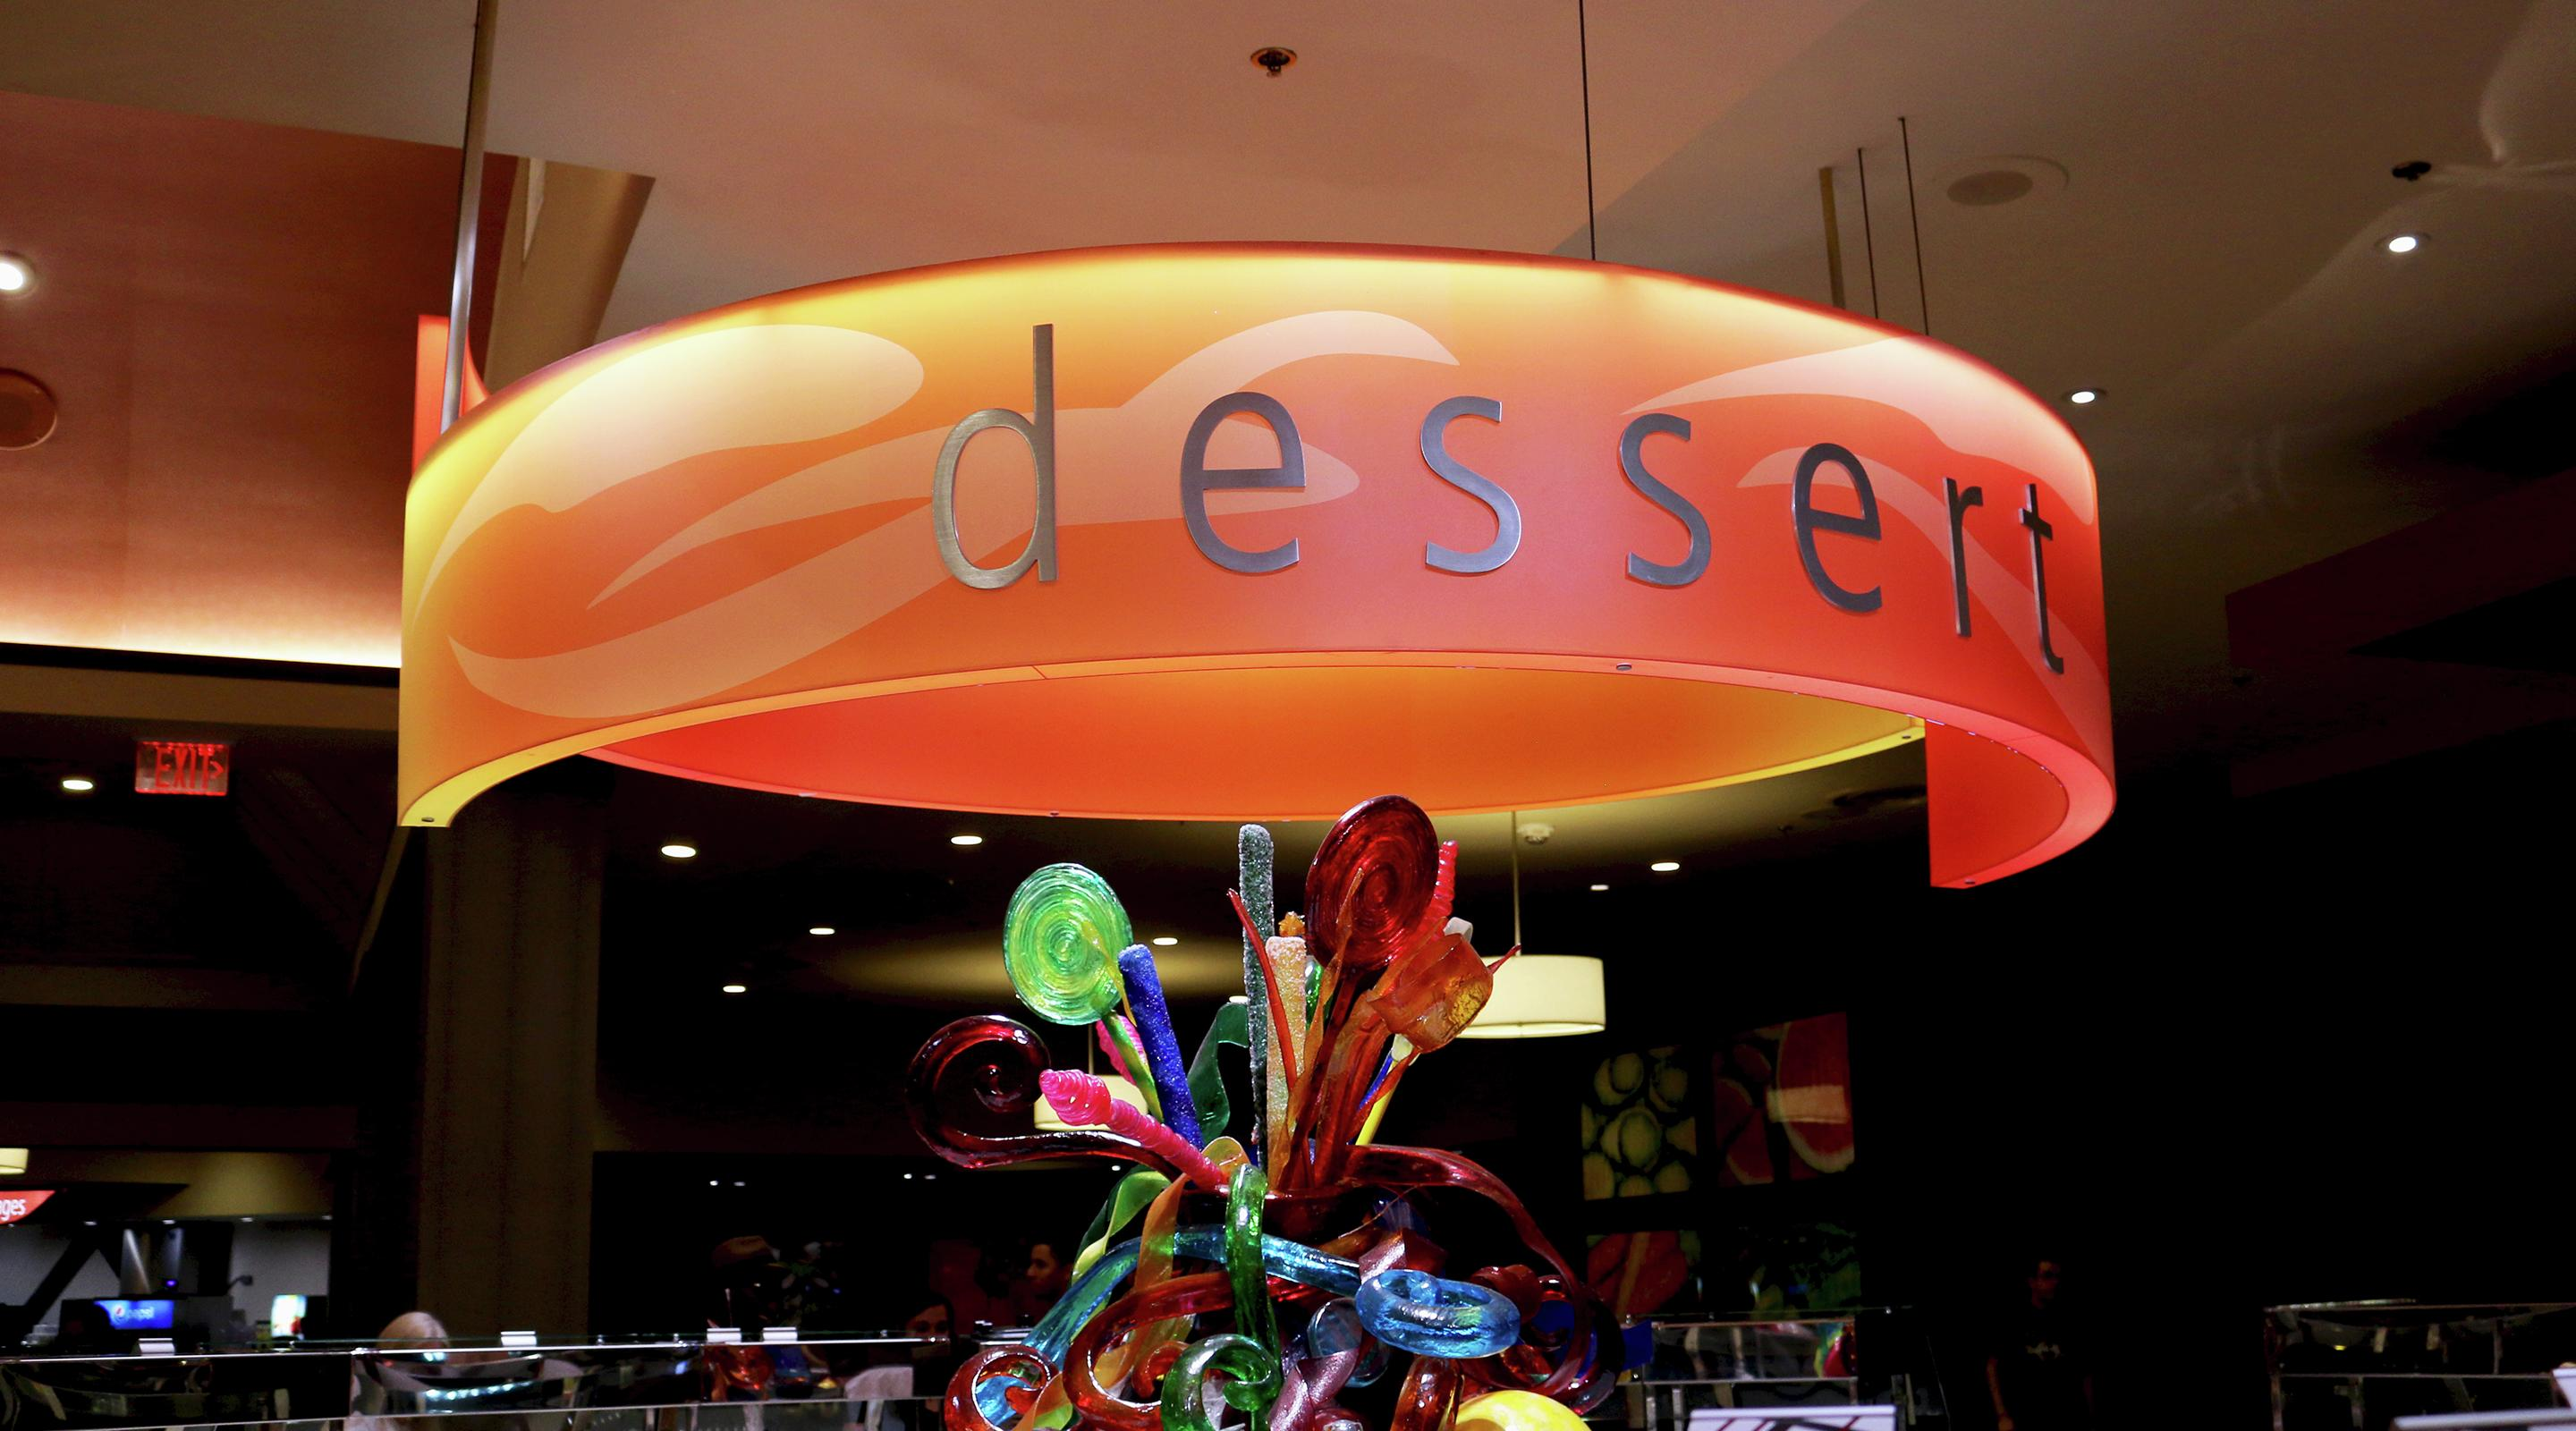 Experience our interactive dessert station with a never-ending assortment of sweets and treats.